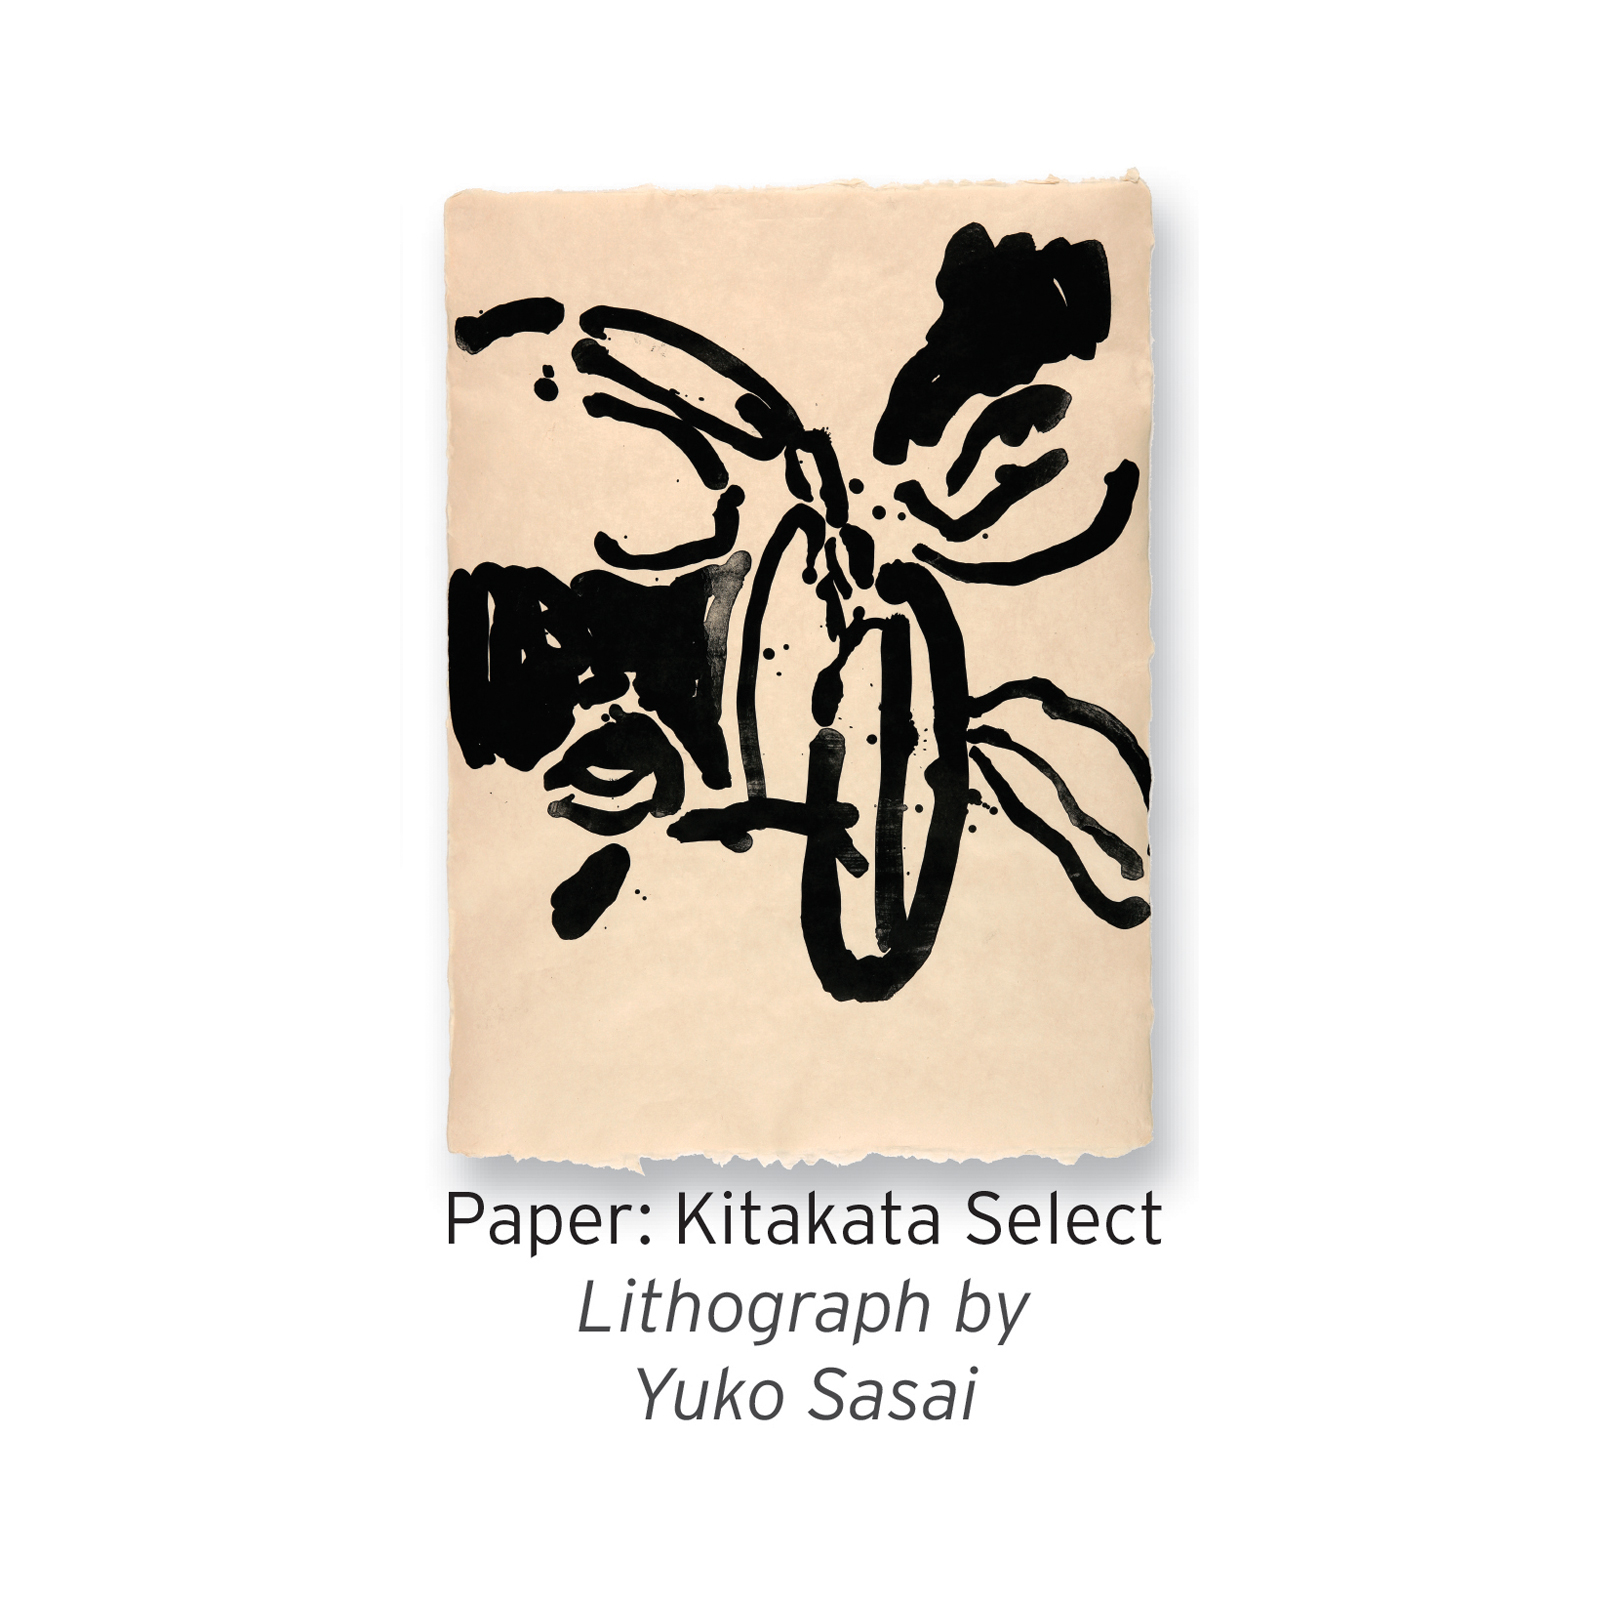 Kitakata Select